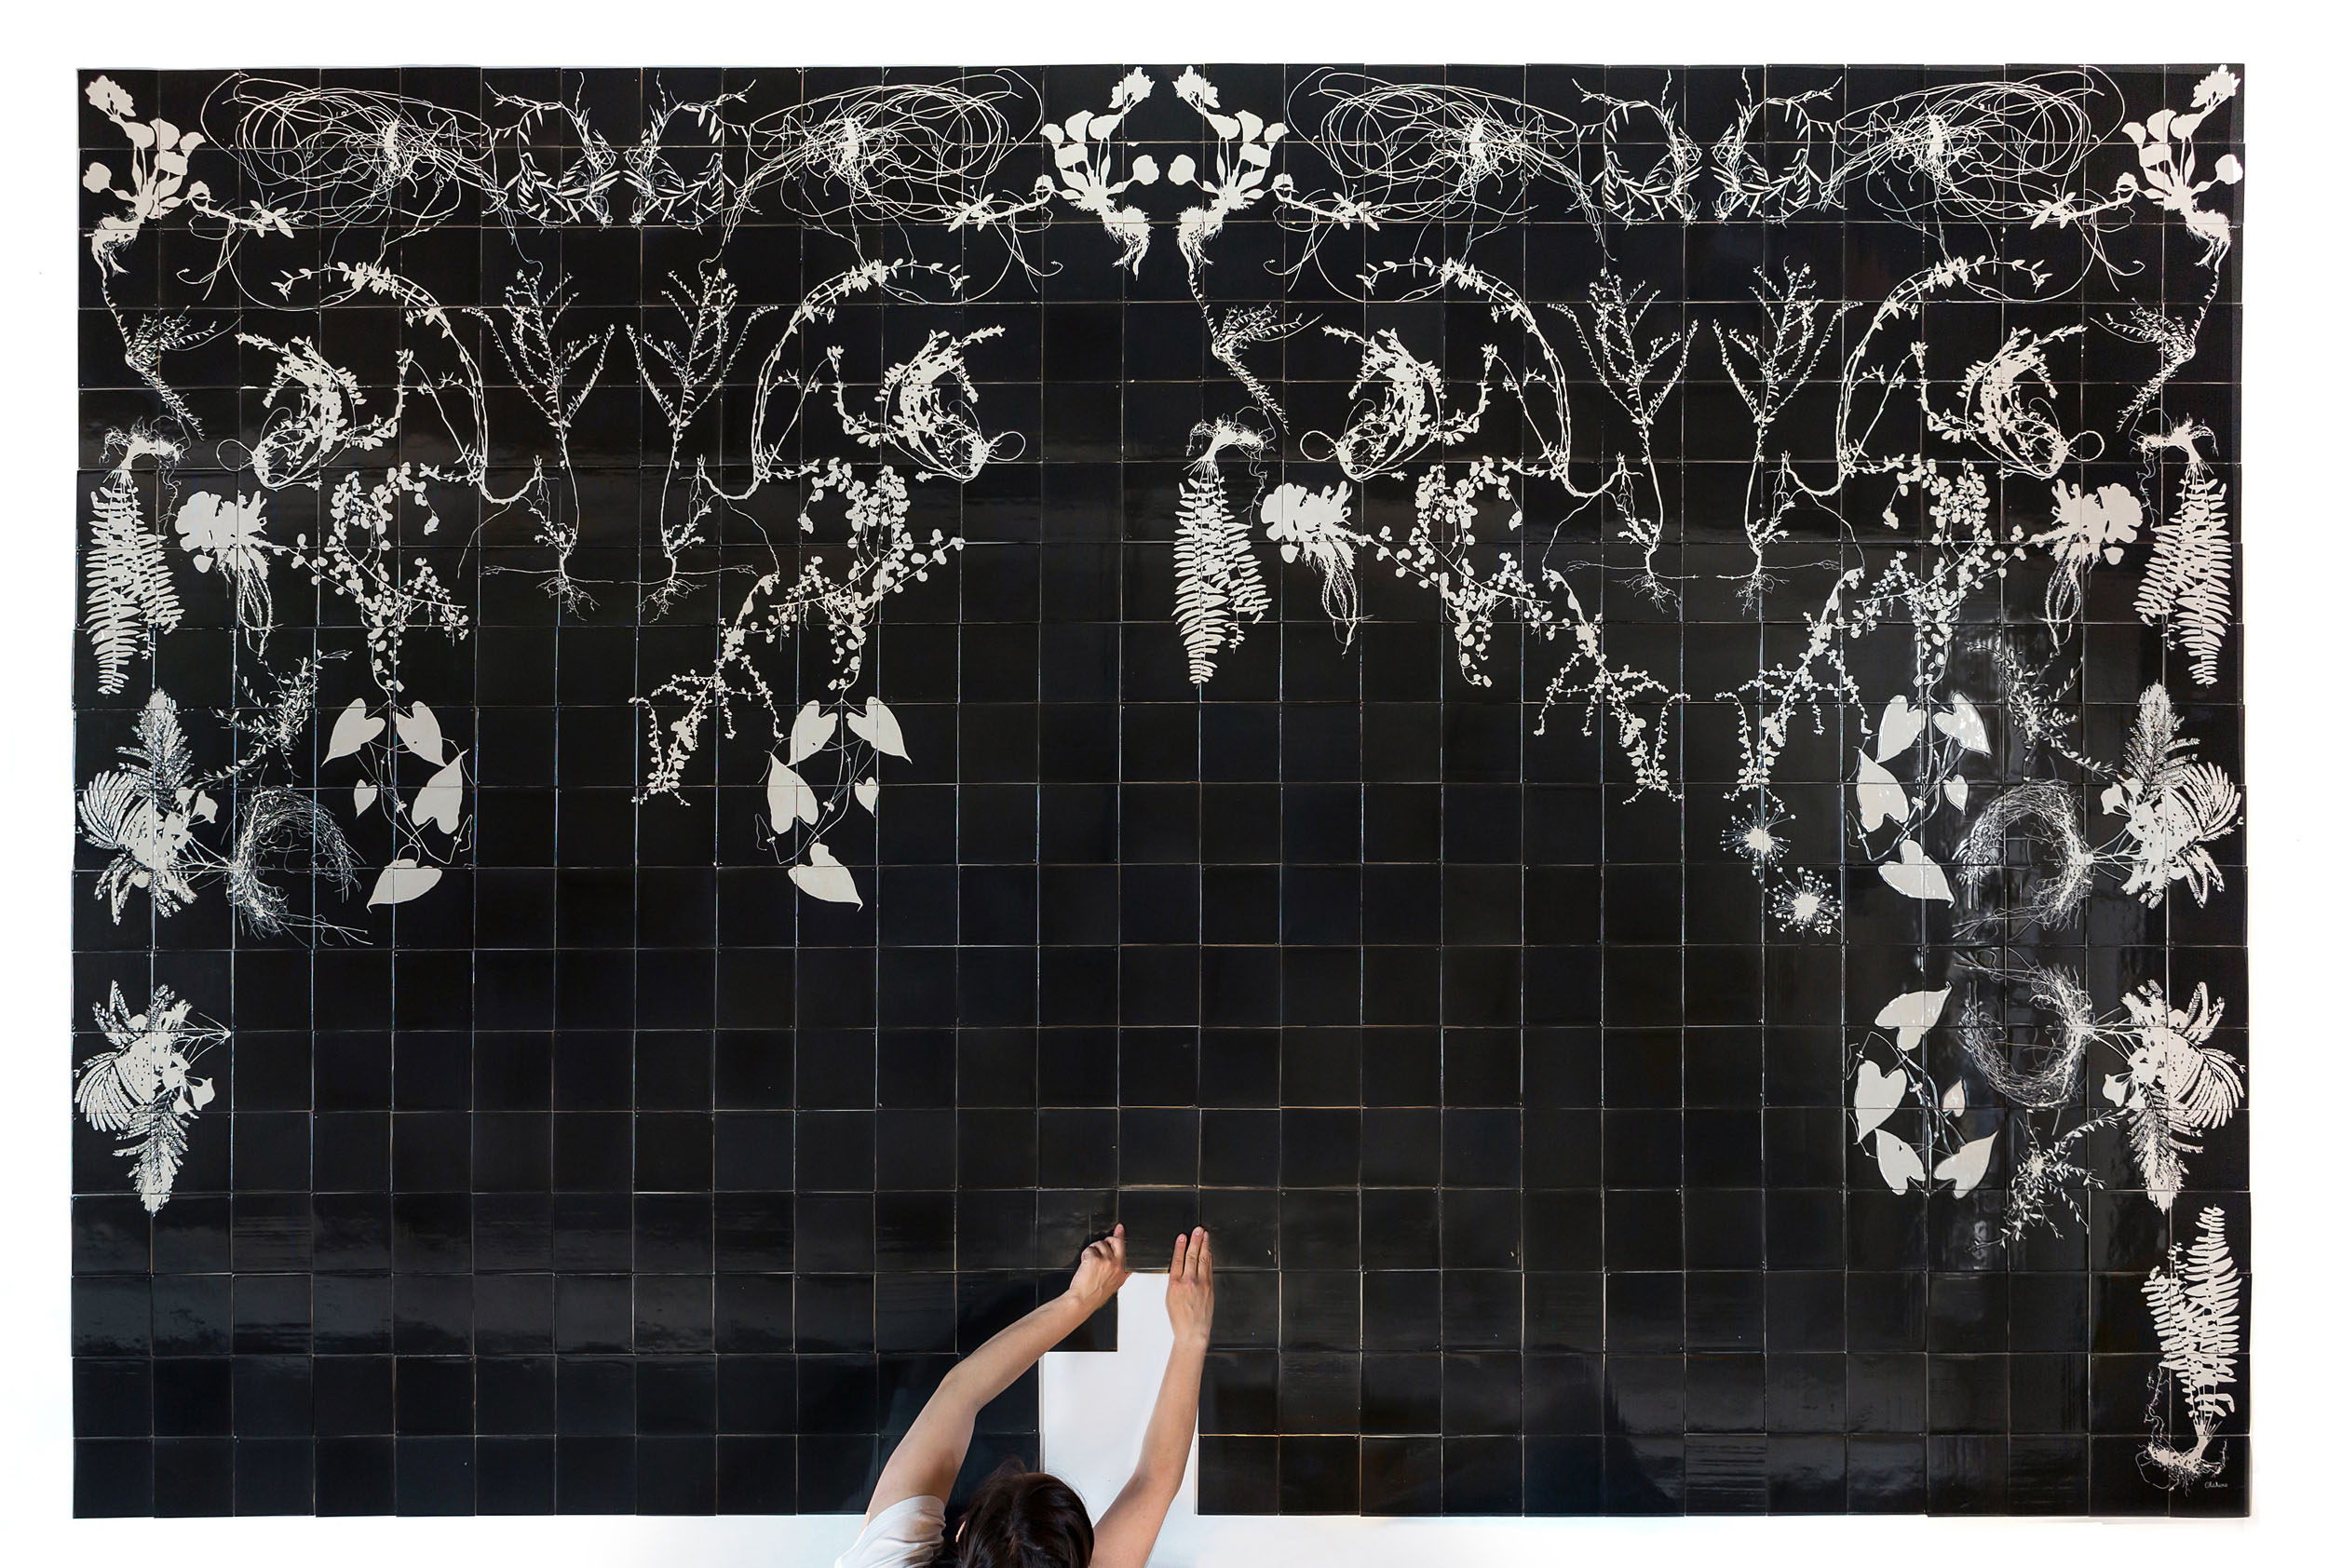 A Botanical Tiles Mural layed out on the floor in black and white glaze